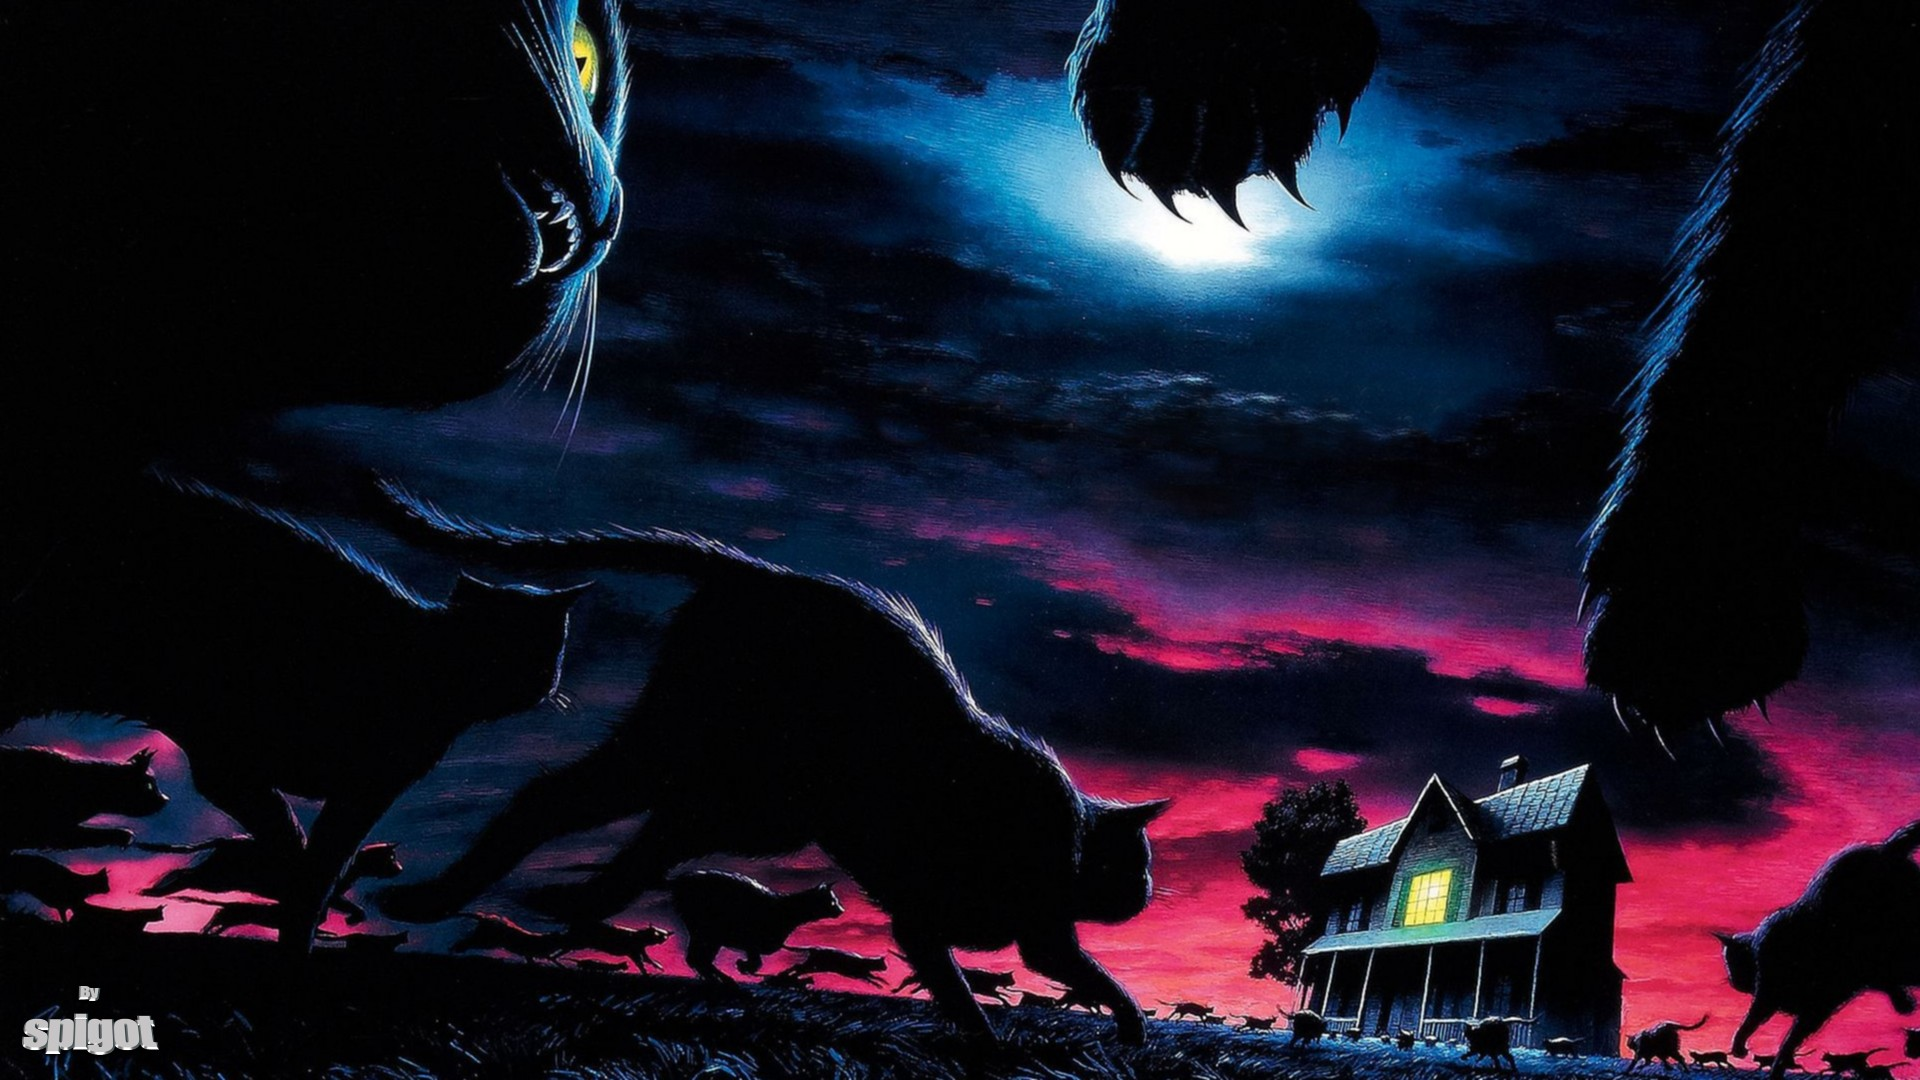 The Cats from Sleepwalkers | George Spigot's Blog